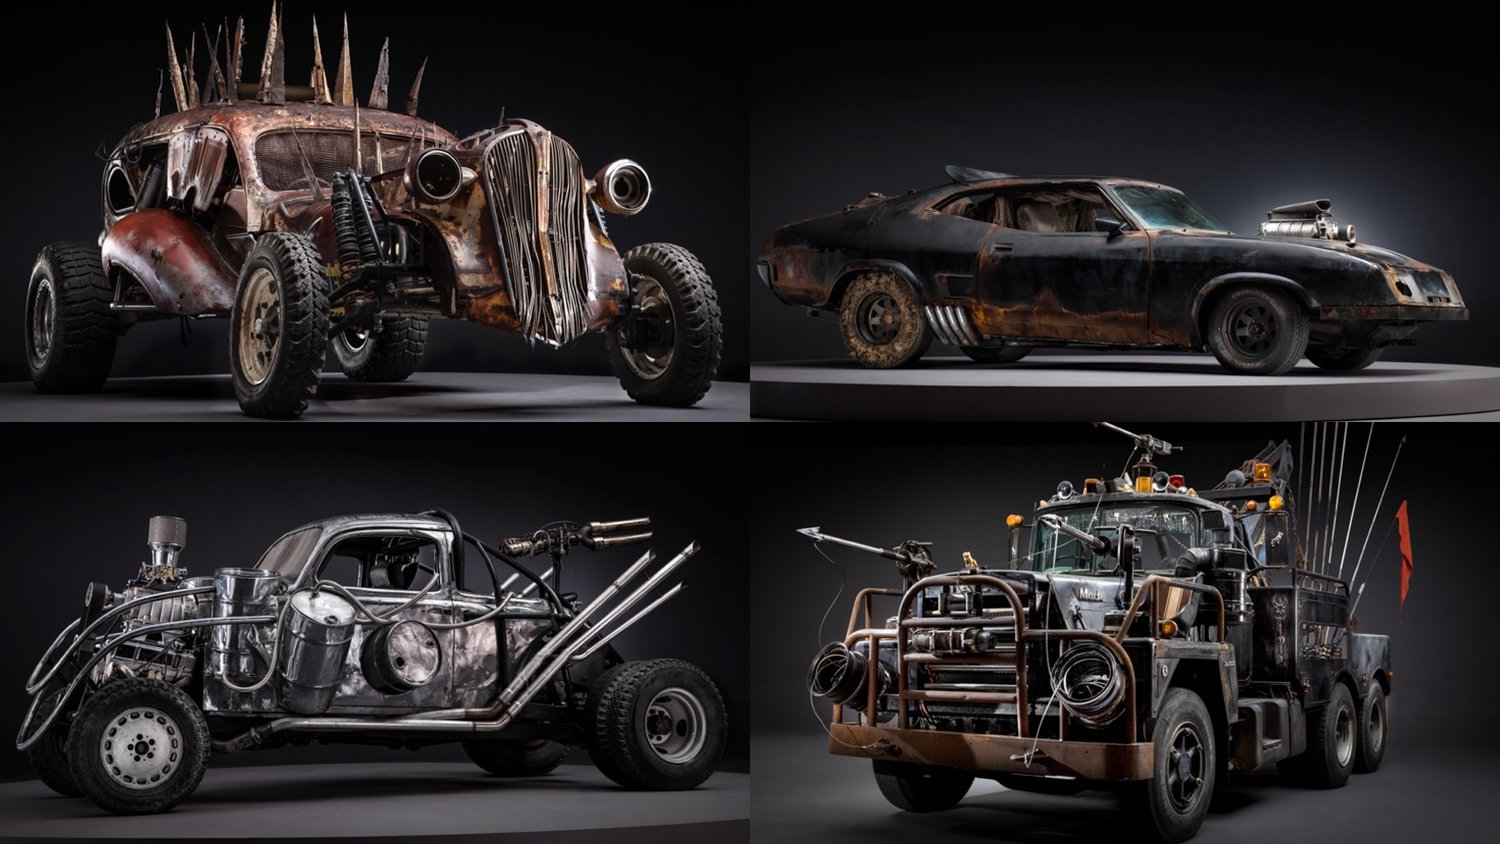 Stunning Photos of the Badass Cars of MAD MAX: FURY ROAD Before They Were Destroyed